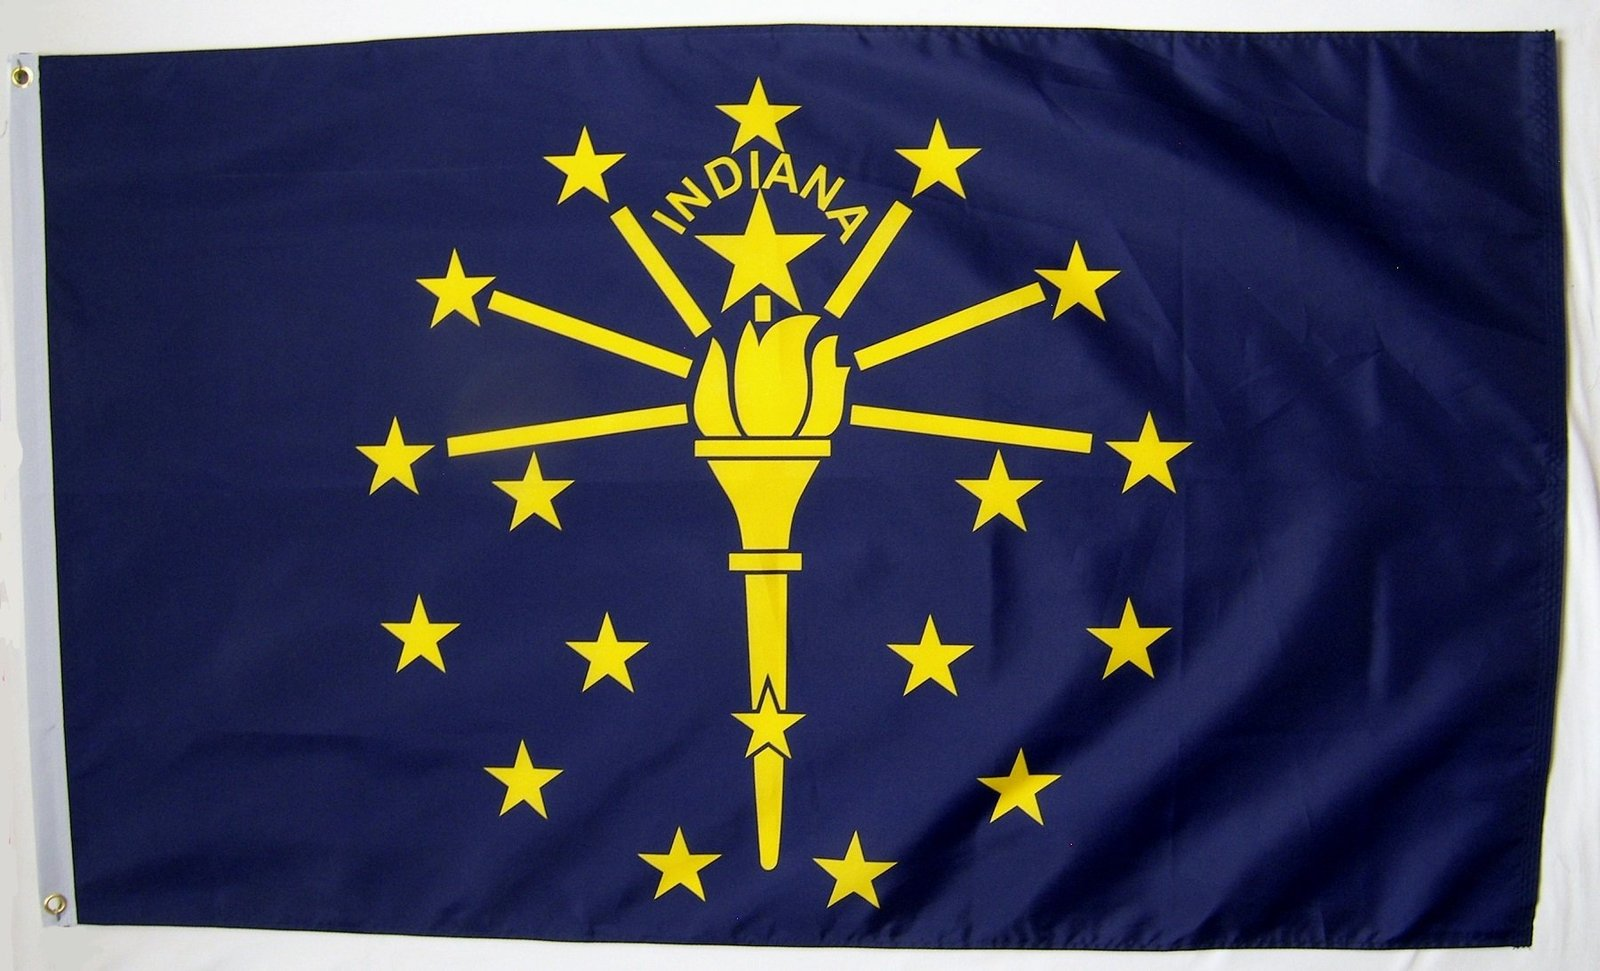 State of Indiana Flag 3' X 5' Indoor Outdoor State Banner